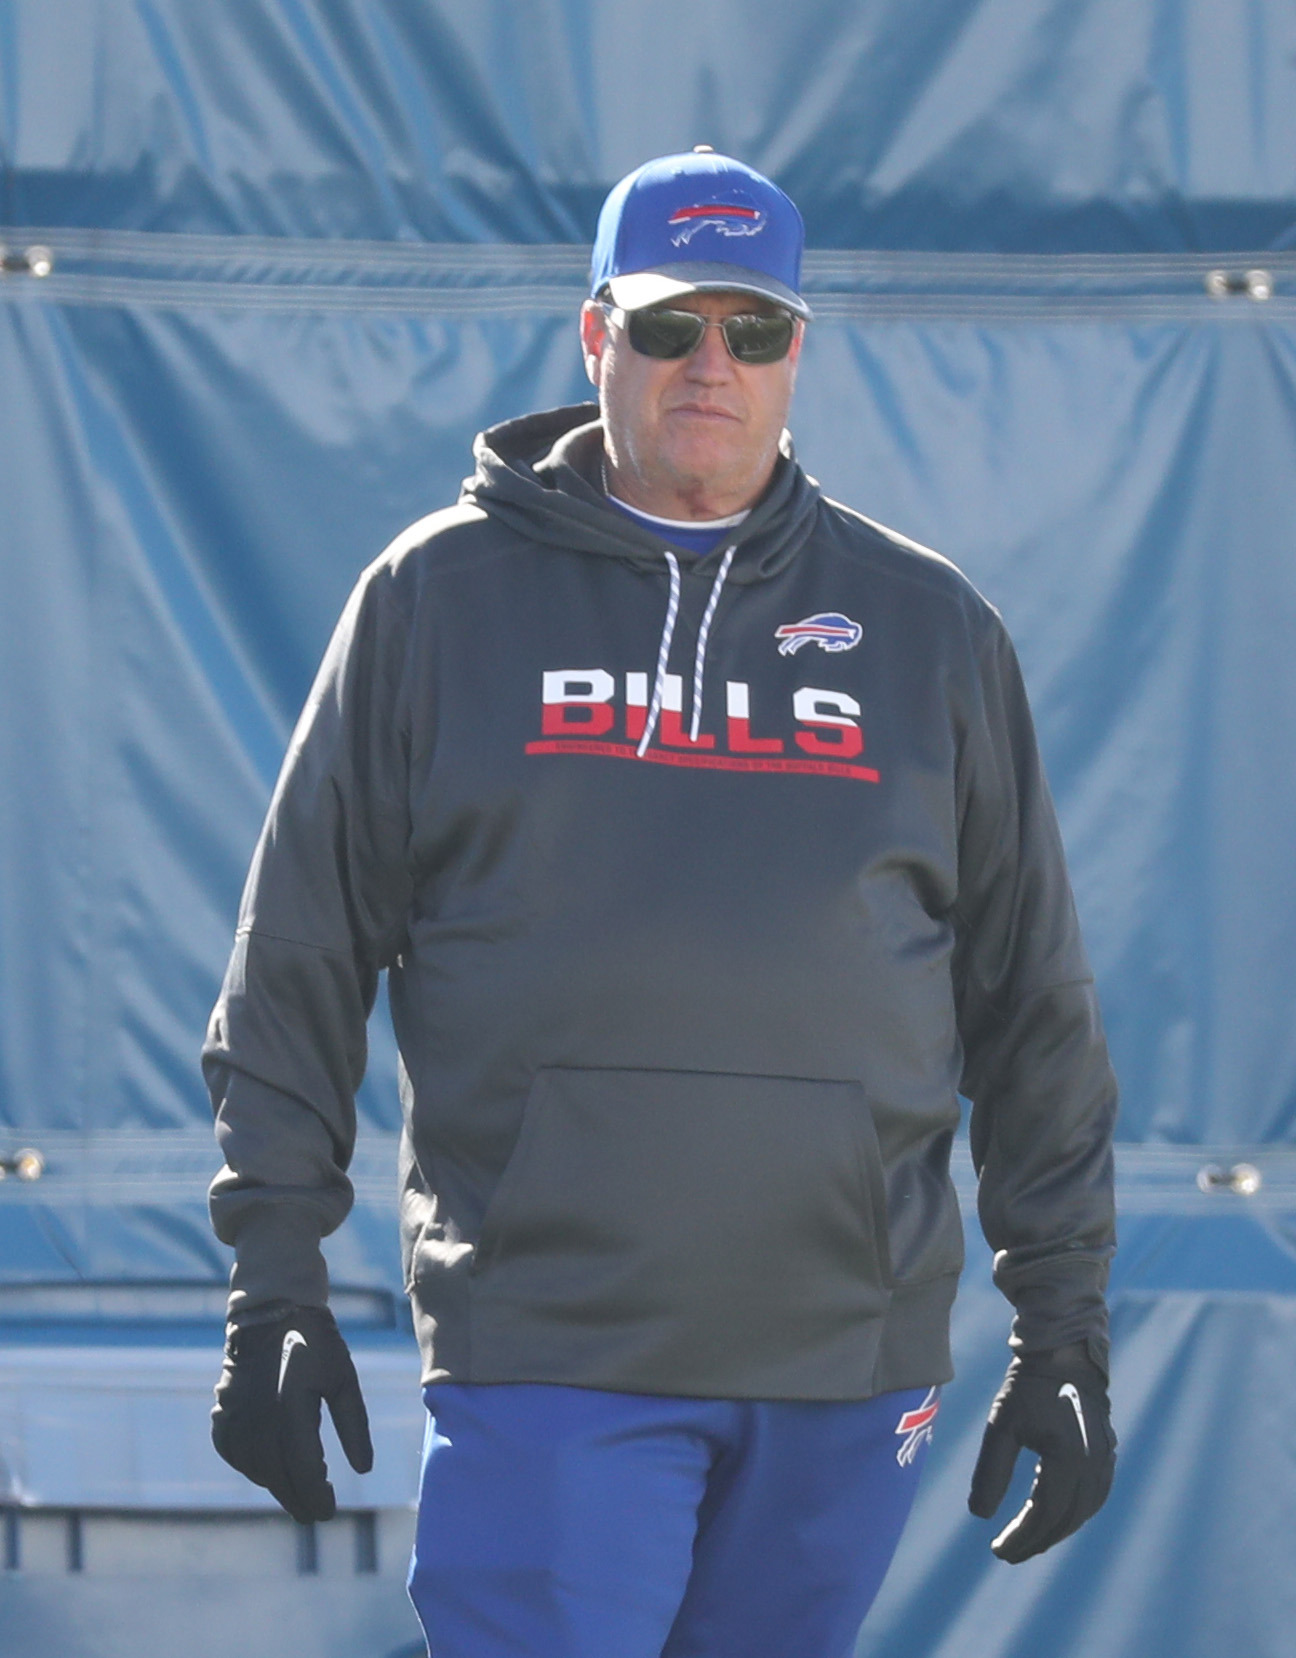 Buffalo Bills head coach Rex Ryan watches practice from the sideline at ADPRO Sports Training Center  in N.Y. on Monday, Nov. 14, 2016.  (James P. McCoy/Buffalo News)